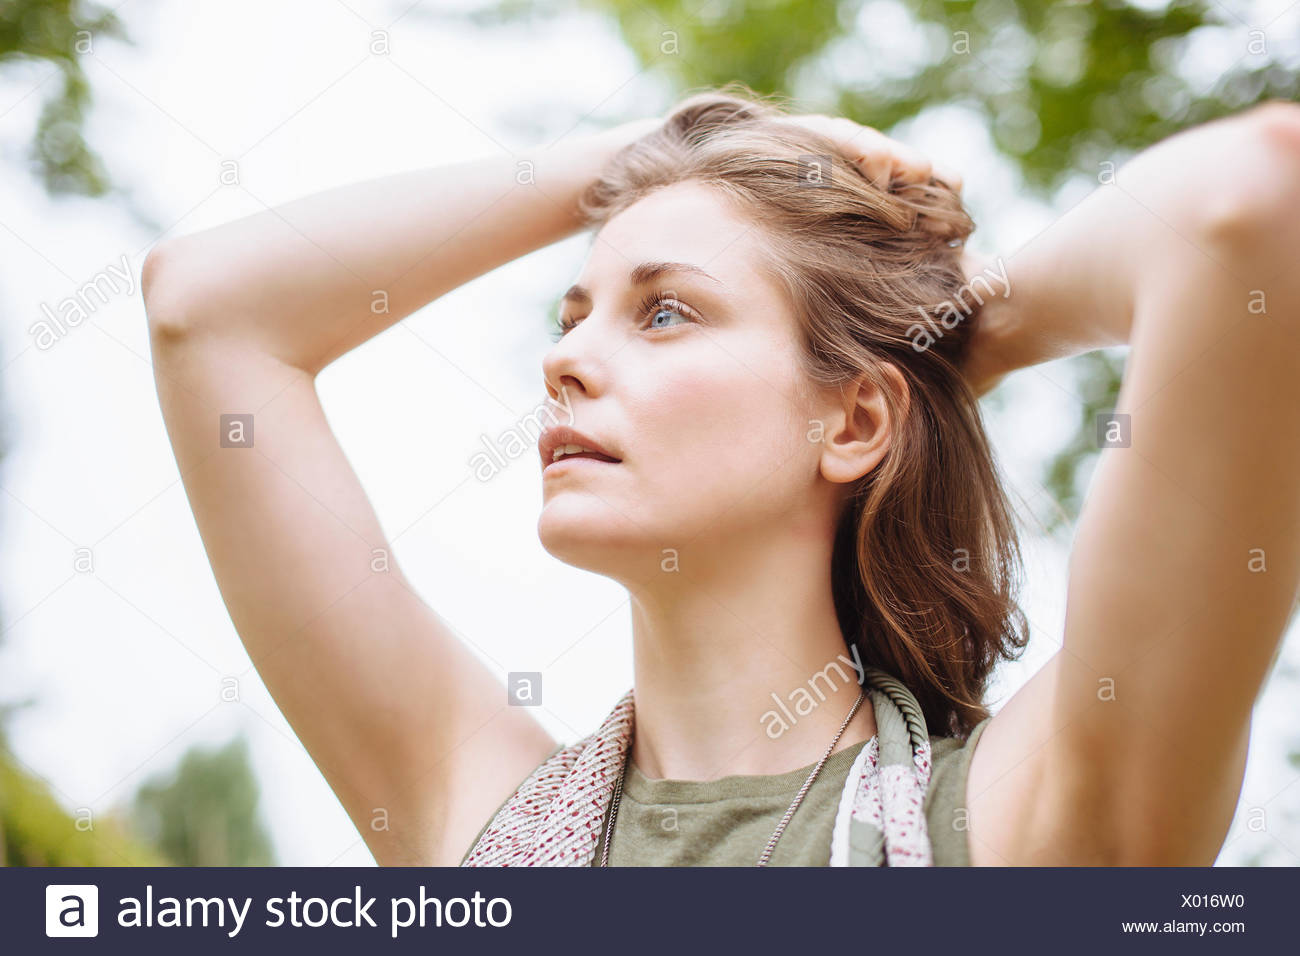 Serene young woman gazing up with hands in hair - Stock Image